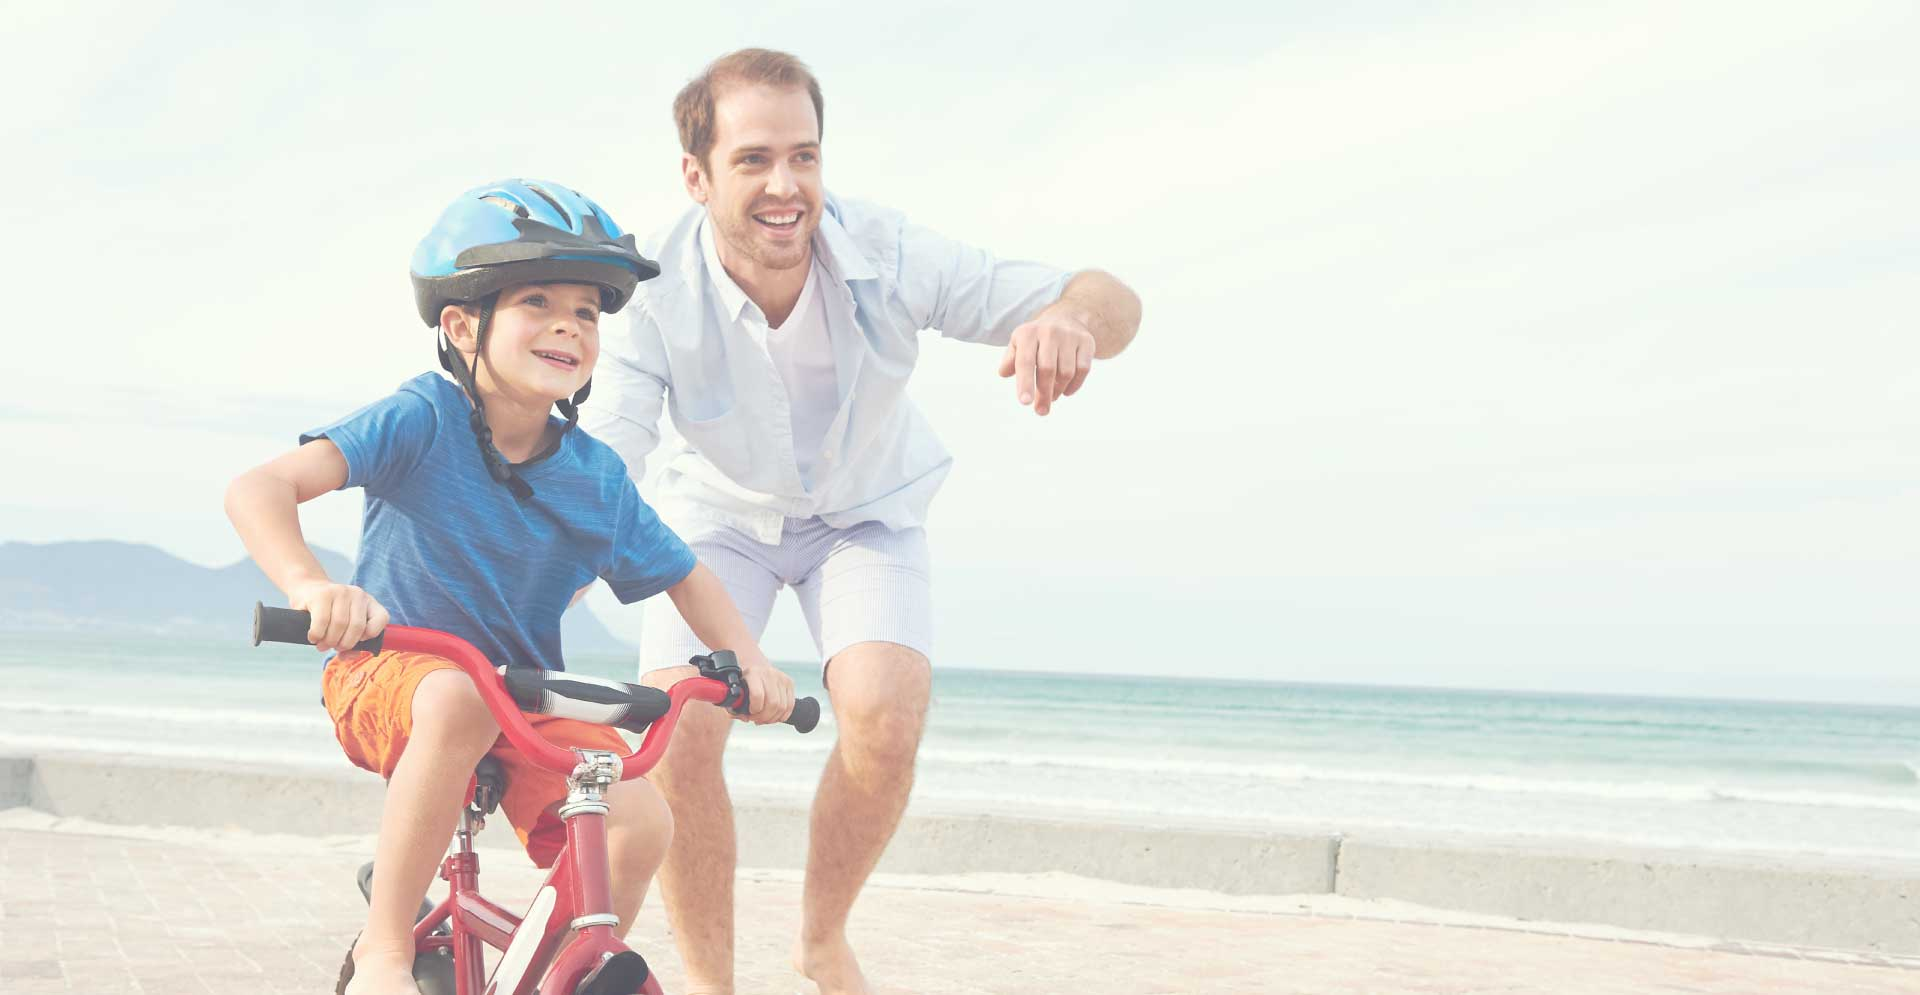 dad-and-son-on-bike-at-the-beach-image-treovir